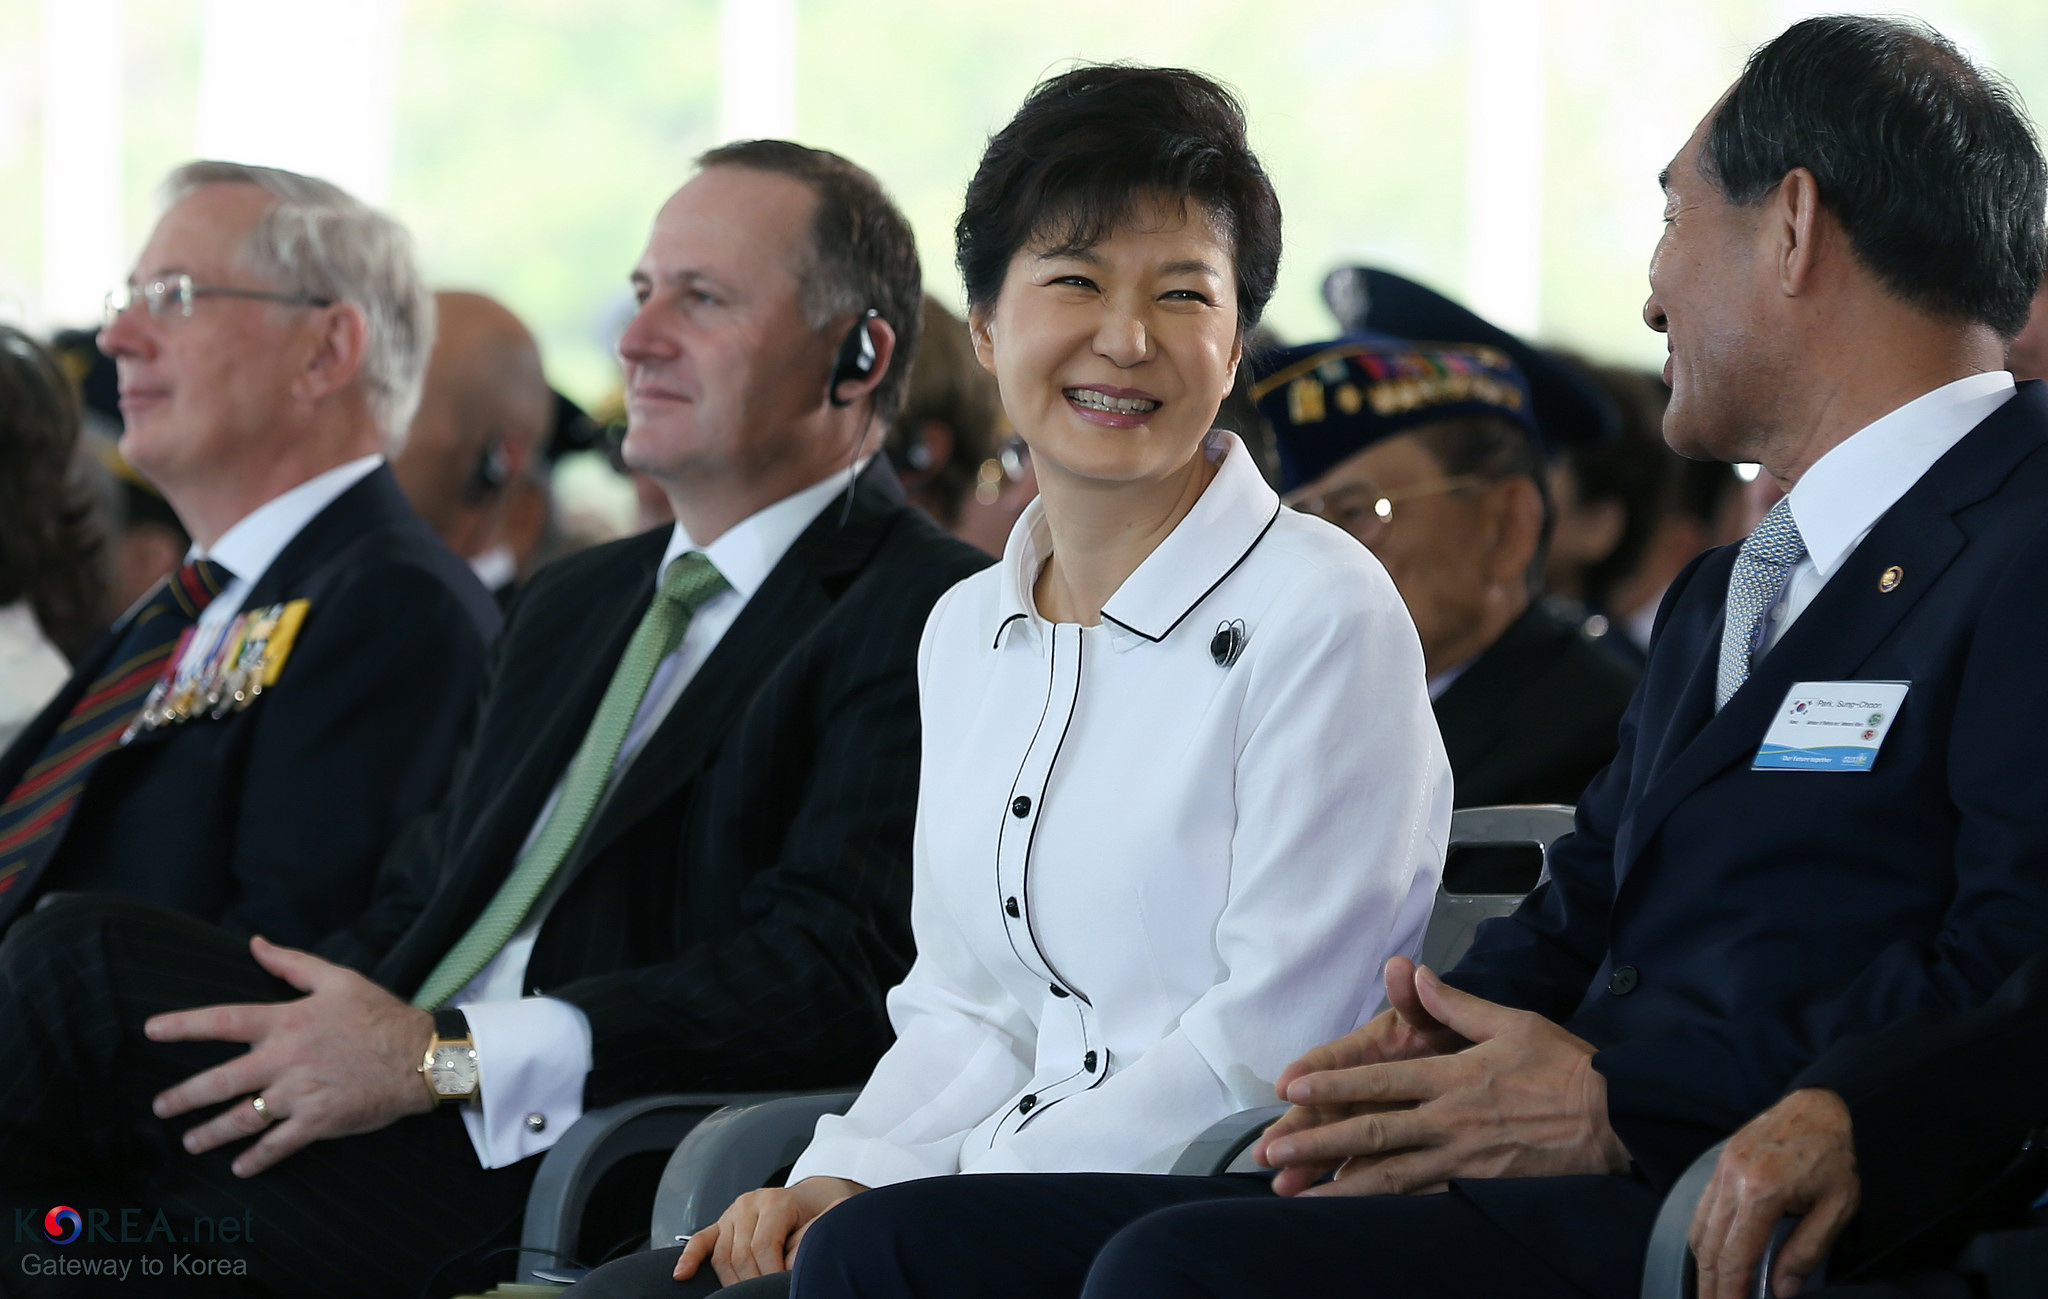 Park Guen-hye smiles during the Korean War at the ceremony marking the 60th anniversary of the signing of the armistice agreement that ended the Korean War on July 27, 1953. Credit: Republic of Korea/Flickr CC BY-SA 2.0